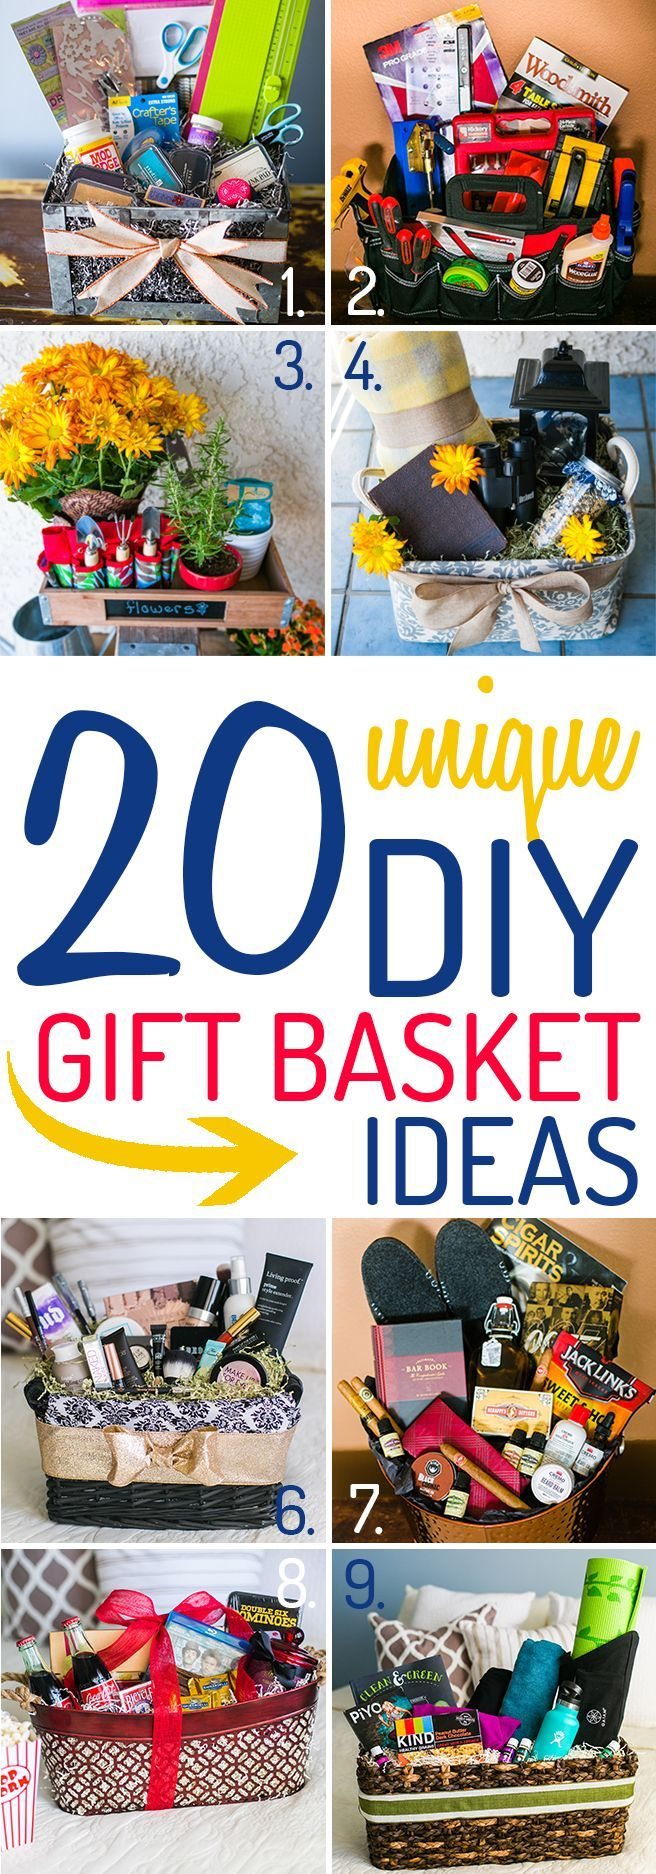 Do it yourself gift basket ideas for all occasions inducedfo linkeddo it yourself gift basket ideas for any and all occasionsdo it yourself gift basket ideas for all occasionsthe best do it yourself gifts dreaming solutioingenieria Image collections